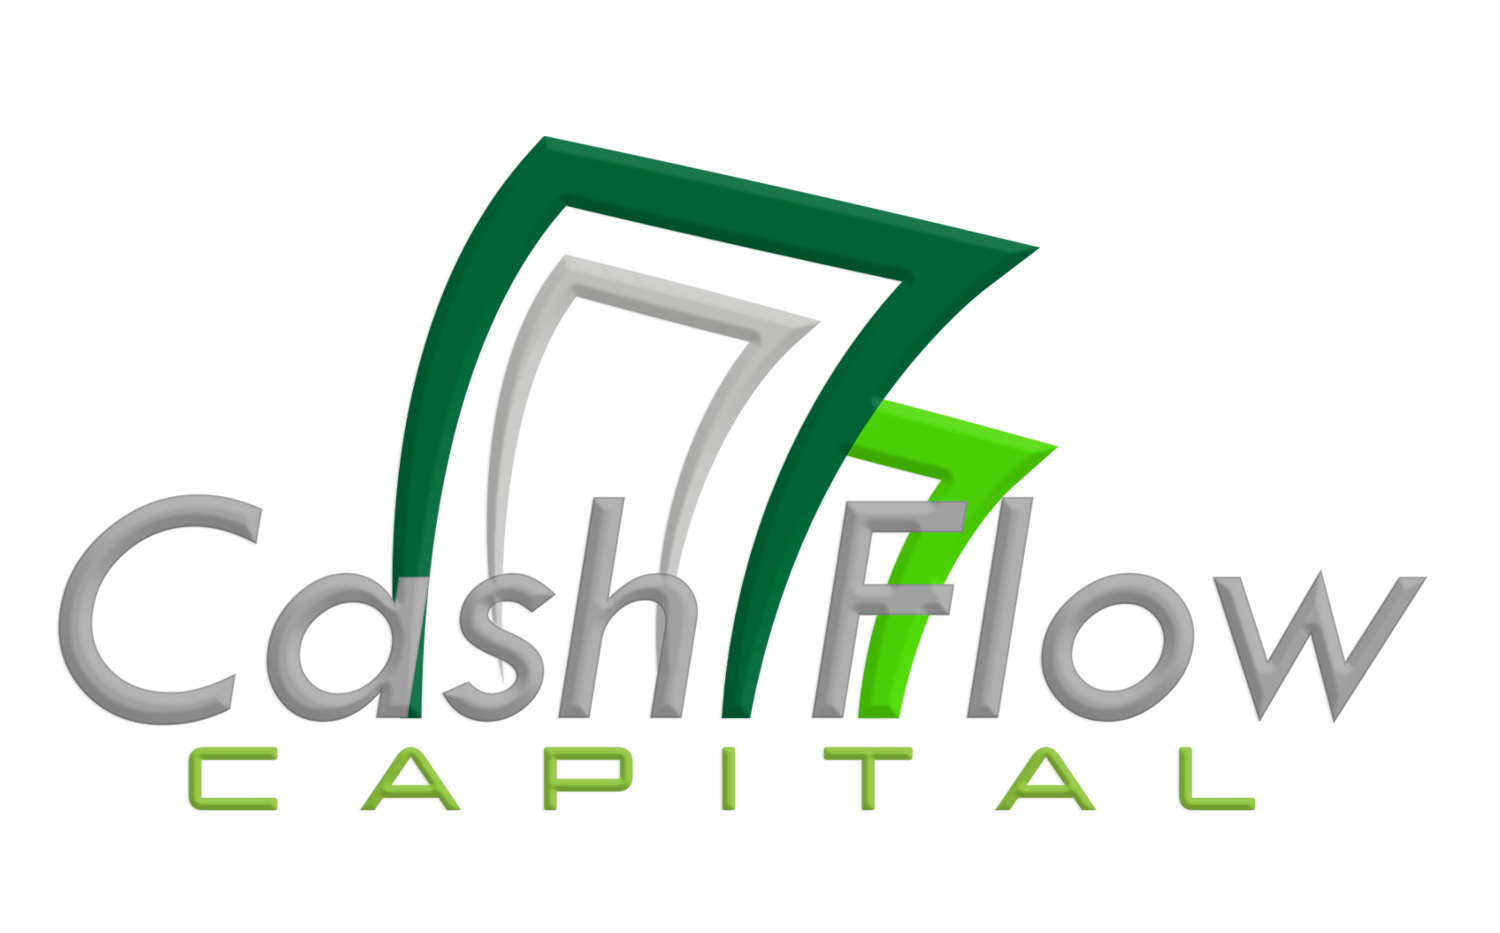 Cash Flow Capital